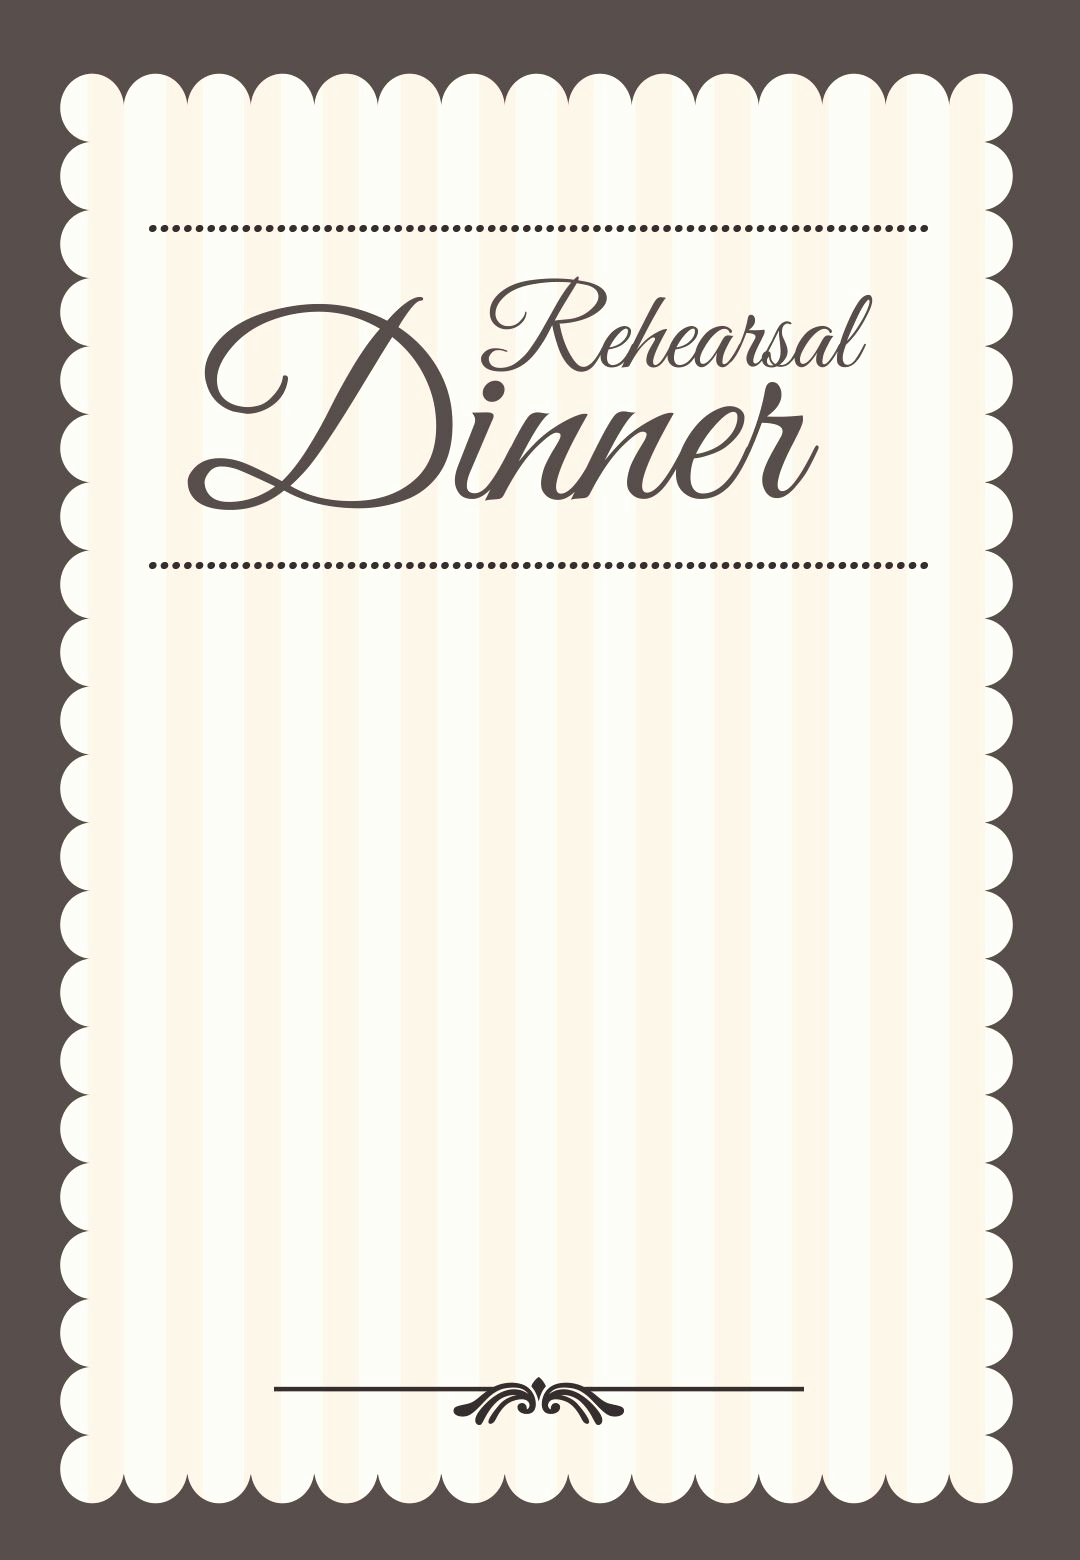 Rehearsal Dinner Invitation Template Beautiful Stamped Rehearsal Dinner Free Printable Rehearsal Dinner